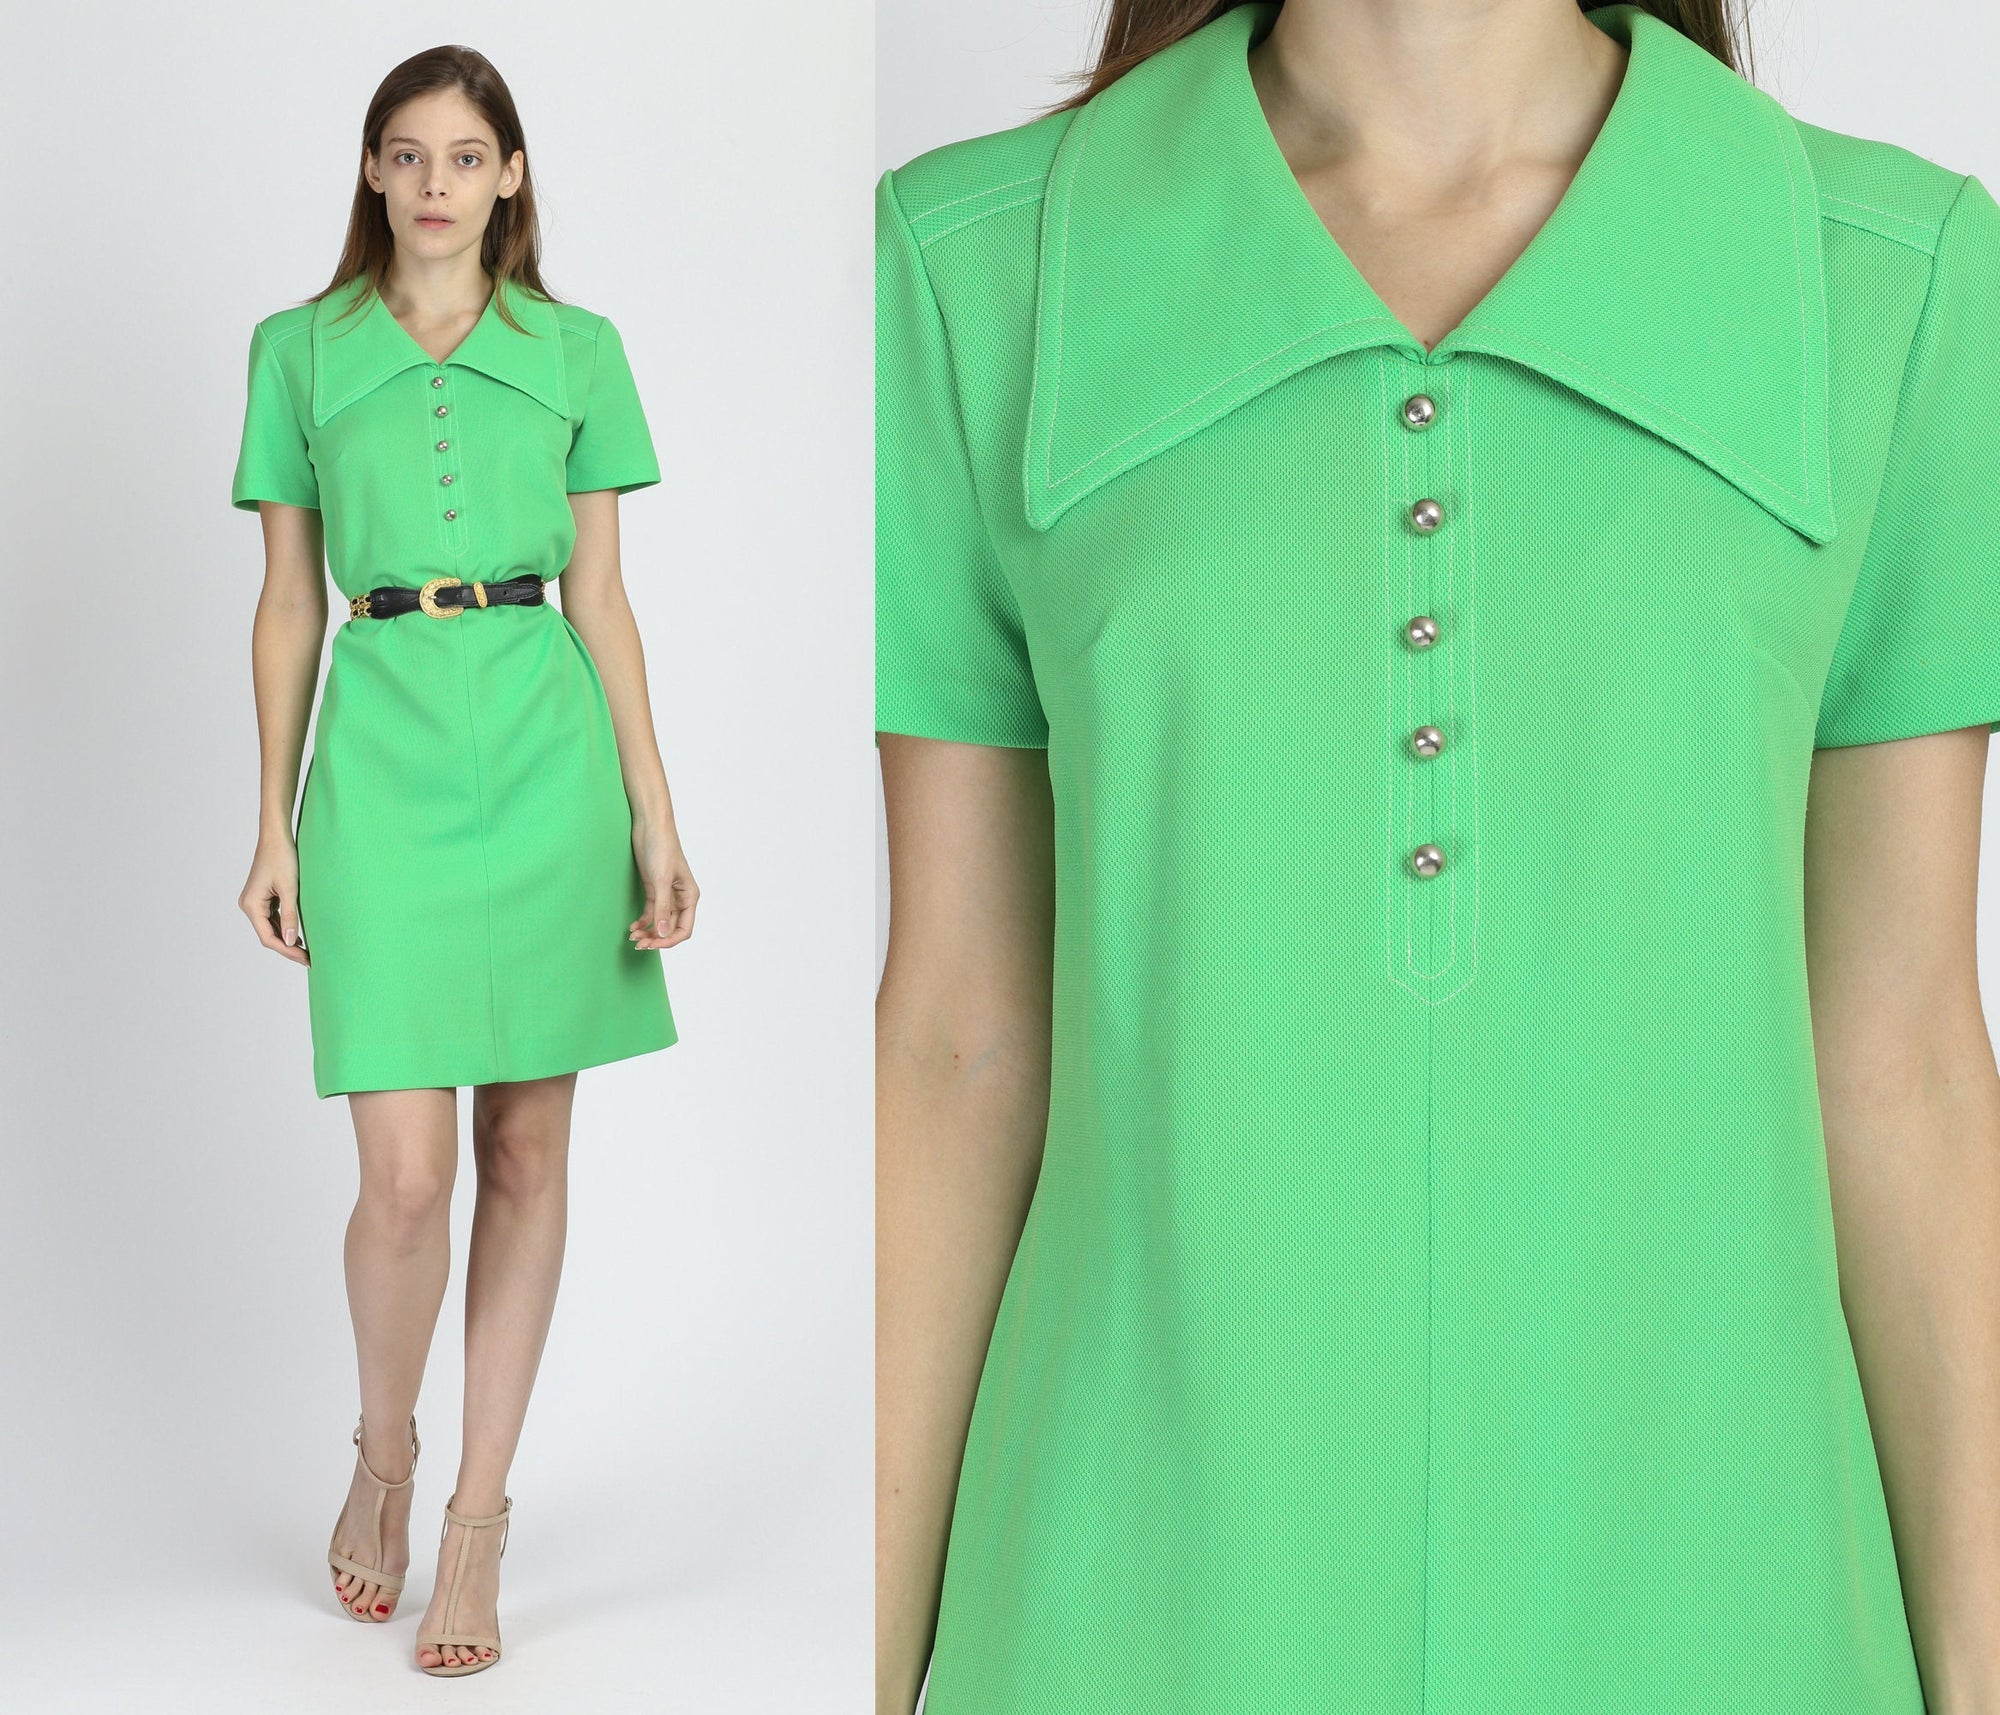 70s Green Collared Shift Dress - Medium to Large